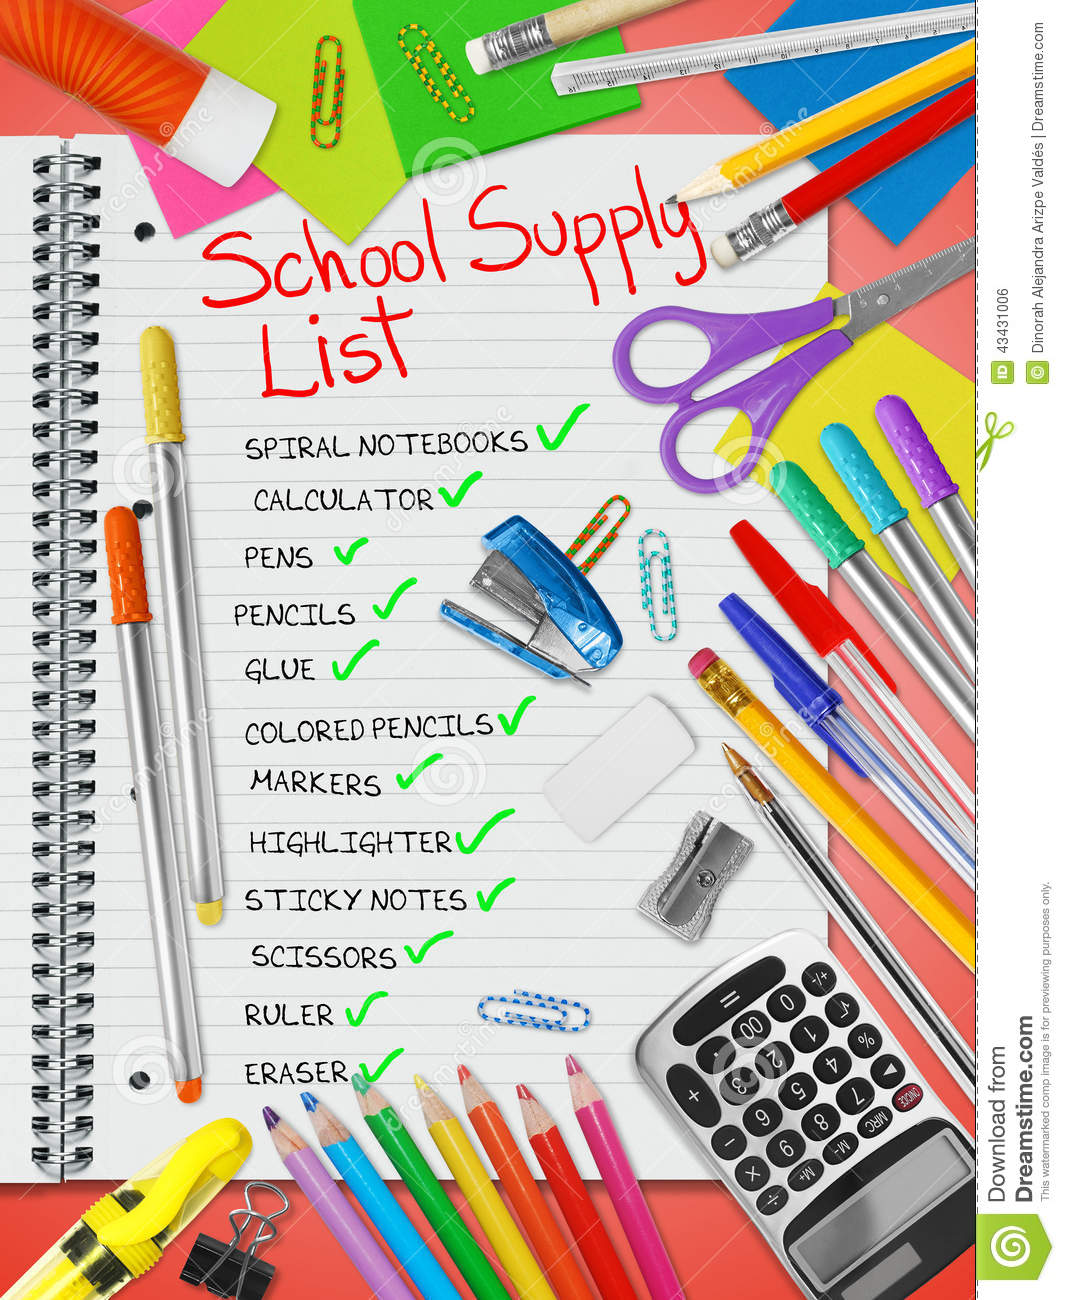 School Supply List Stock Photo Image Of Glue Lined